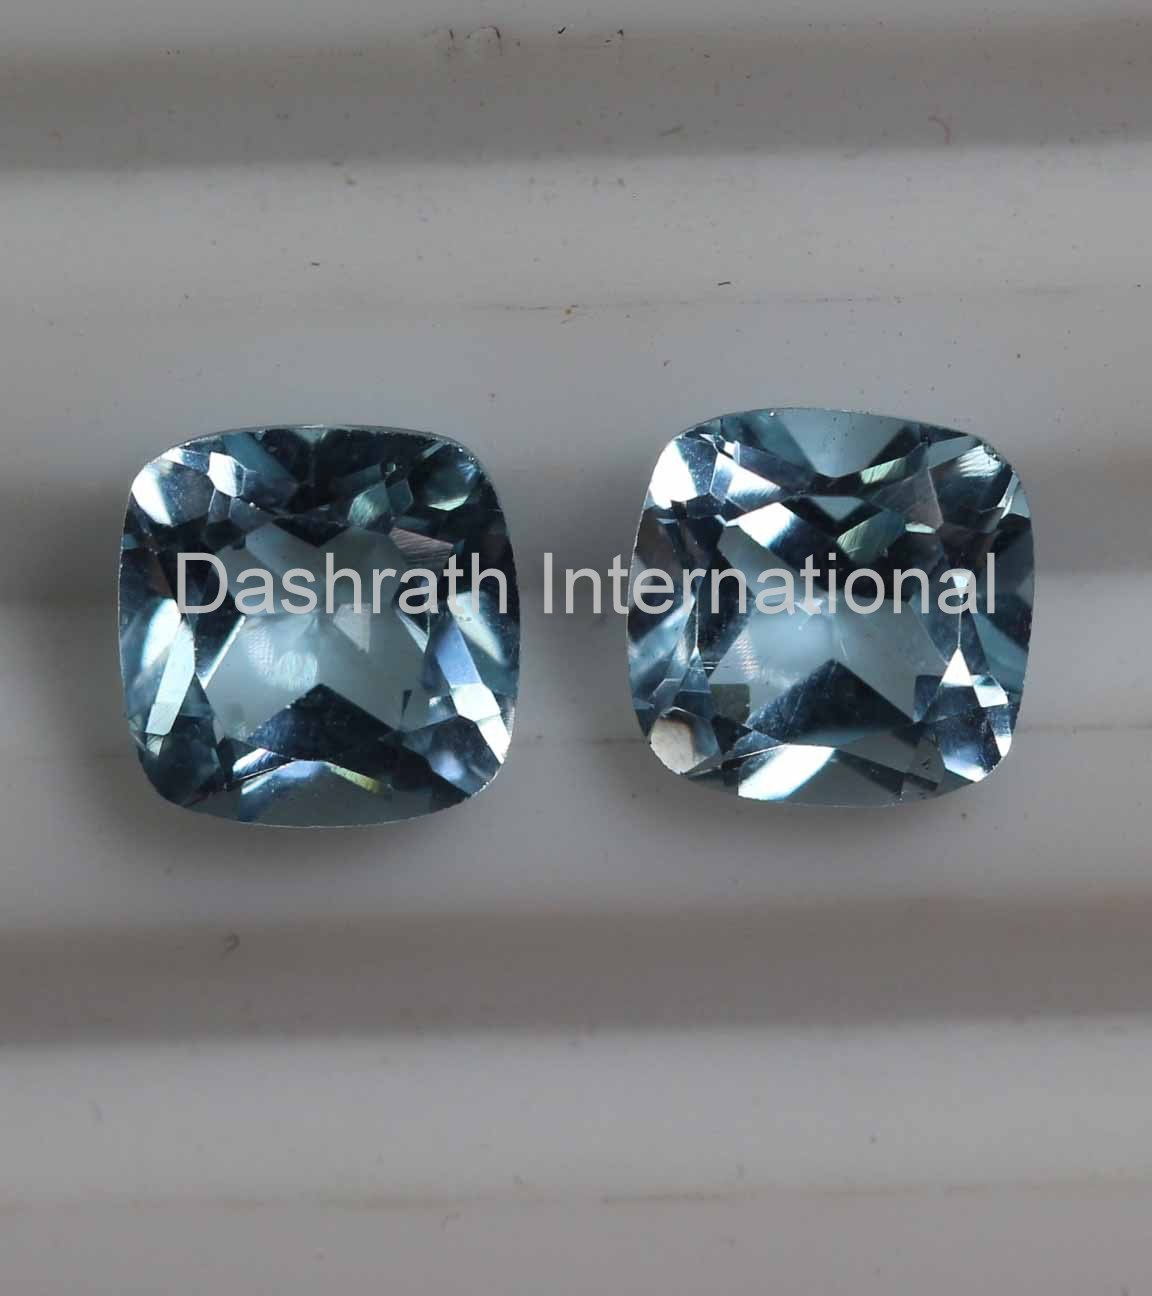 5mm Natural Sky Blue Topaz Faceted Cut Cushion 1 Piece  Top Quality Loose Gemstone